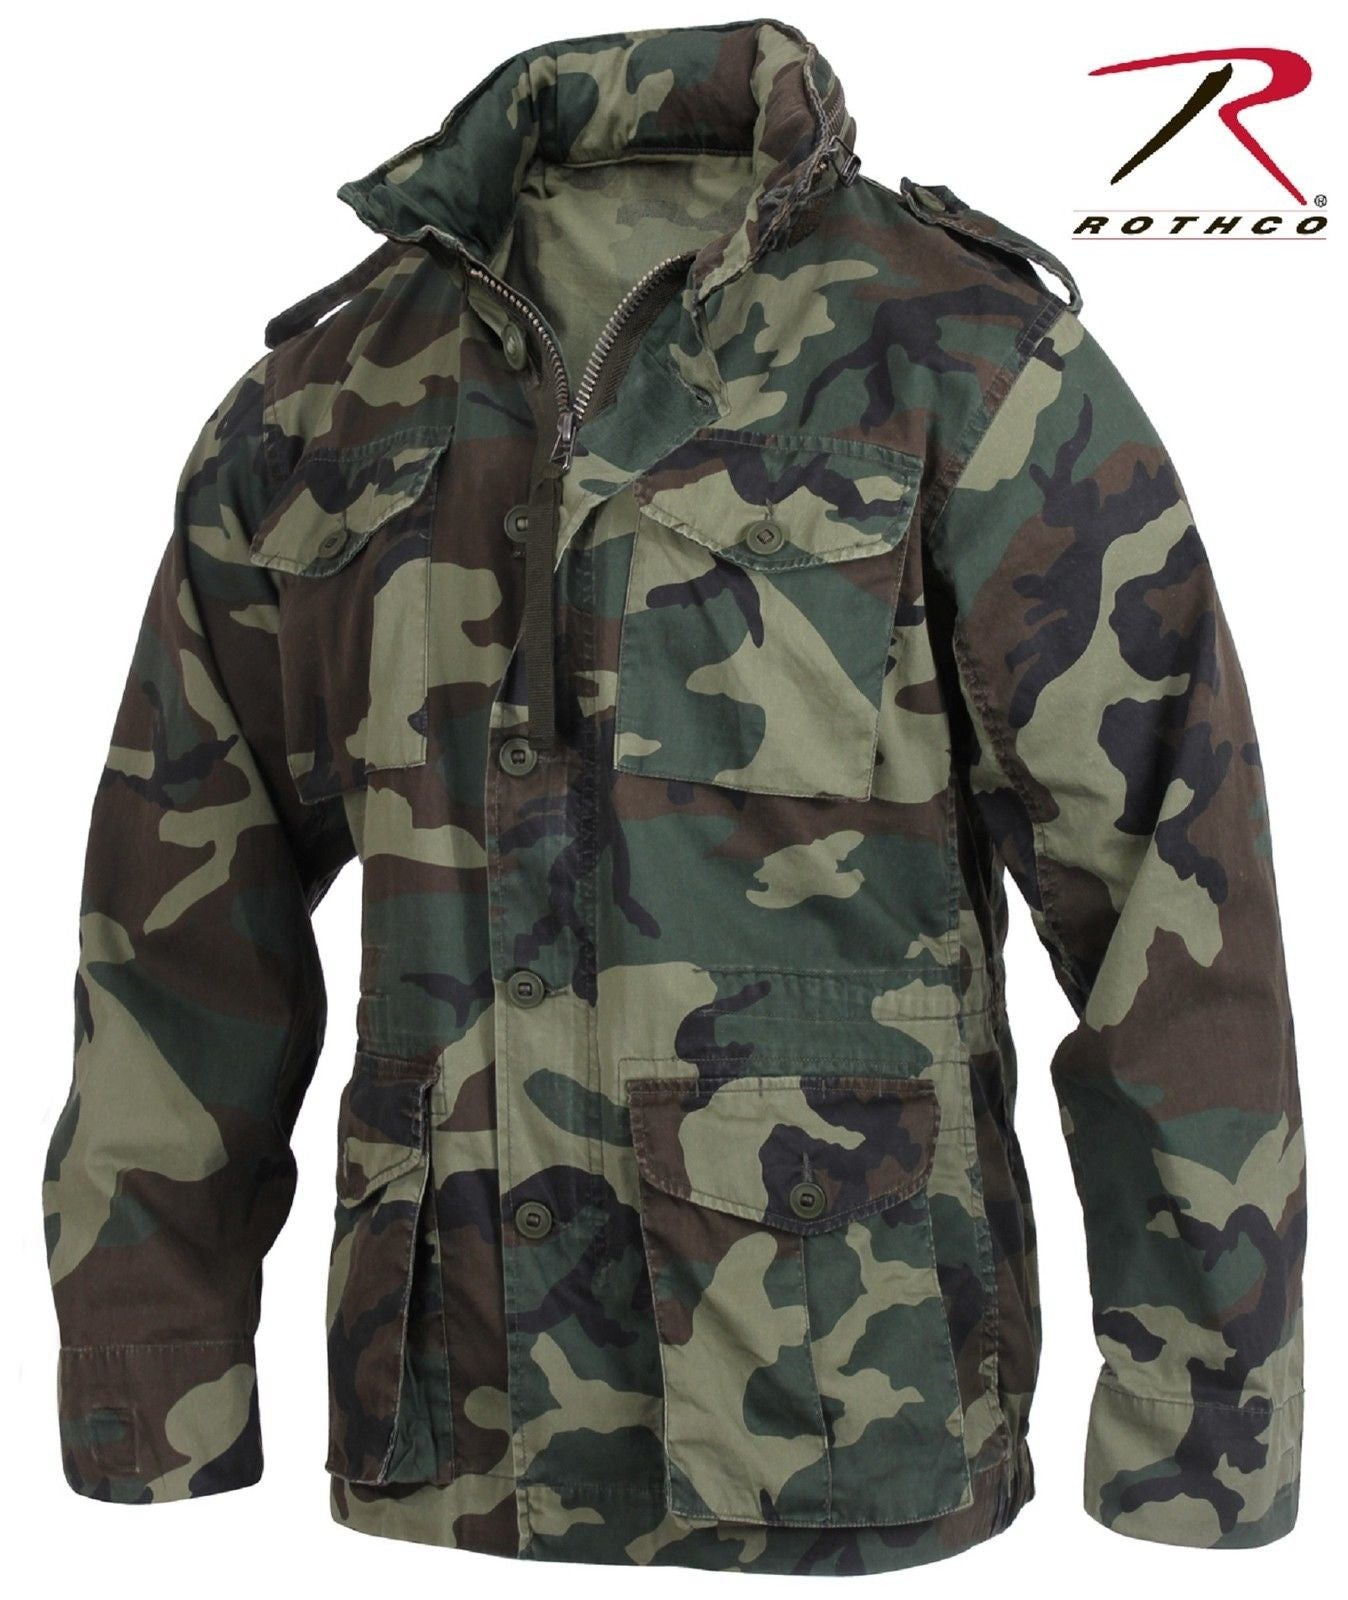 Mens Woodland Camouflage Lightweight M-65 Military Style Field ... 5ee008b6545